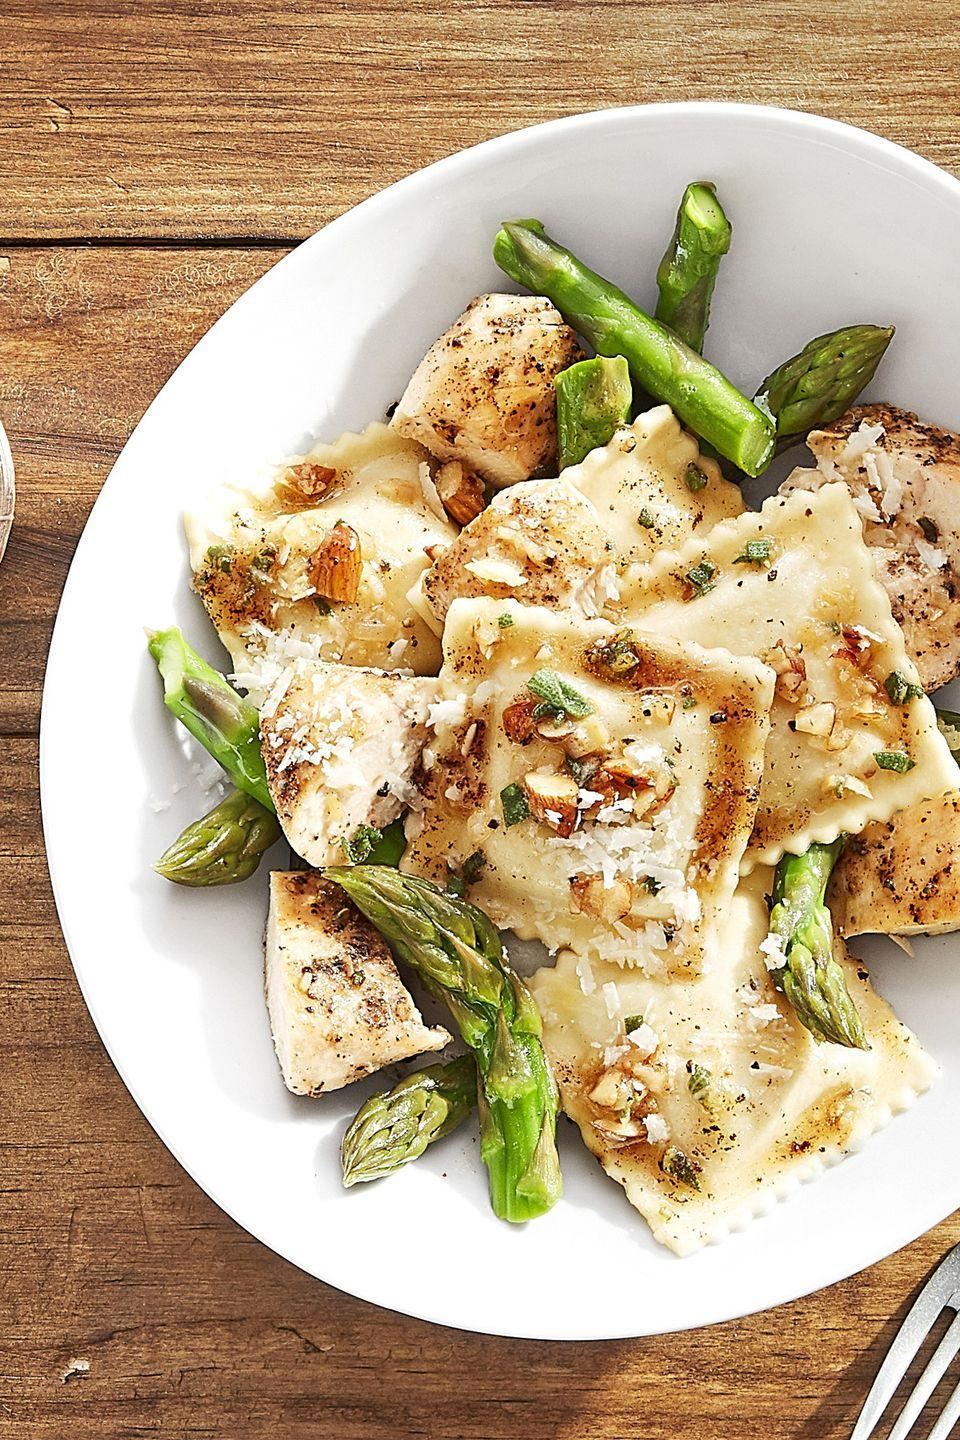 "<p>Pack some protein into a butternut squash ravioli dish with sliced seared chicken.</p><p><strong><a href=""https://www.countryliving.com/food-drinks/recipes/a44277/butternut-squash-ravioli-seared-chicken-recipe/"" rel=""nofollow noopener"" target=""_blank"" data-ylk=""slk:Get the recipe"" class=""link rapid-noclick-resp"">Get the recipe</a>.</strong><br></p><p><a class=""link rapid-noclick-resp"" href=""https://www.amazon.com/T-fal-Specialty-Nonstick-Dishwasher-Cookware/dp/B0027MF964?tag=syn-yahoo-20&ascsubtag=%5Bartid%7C10050.g.648%5Bsrc%7Cyahoo-us"" rel=""nofollow noopener"" target=""_blank"" data-ylk=""slk:SHOP SAUCEPANS"">SHOP SAUCEPANS</a></p>"